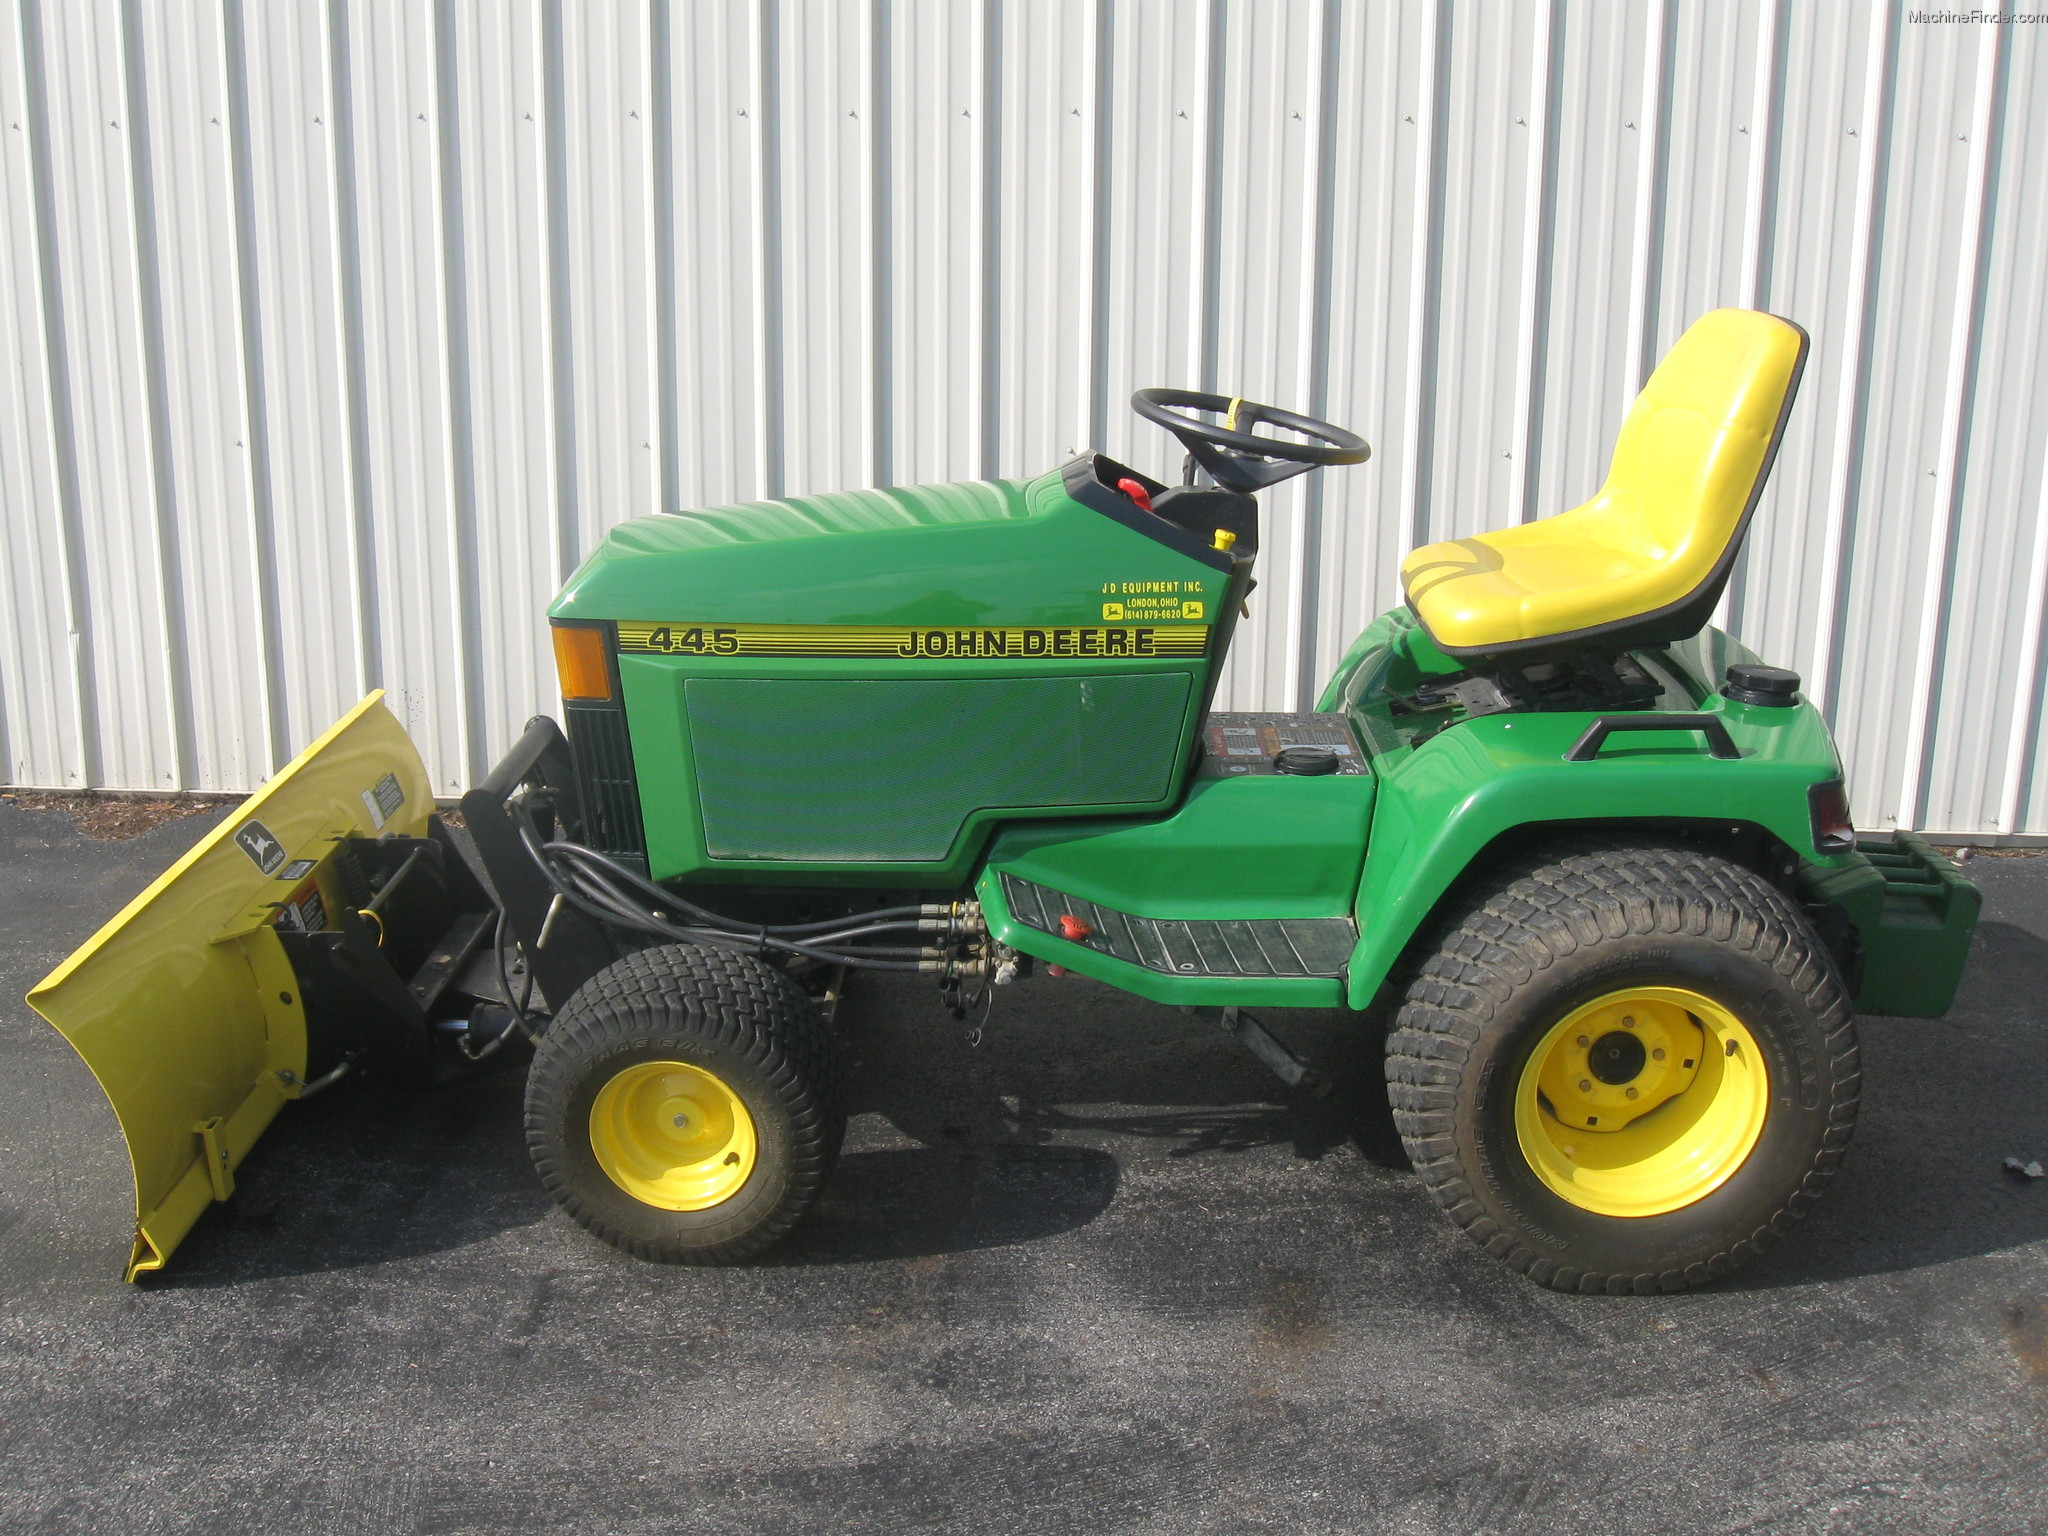 Garden Tractor Forks : John deere lawn tractor attachments car interior design